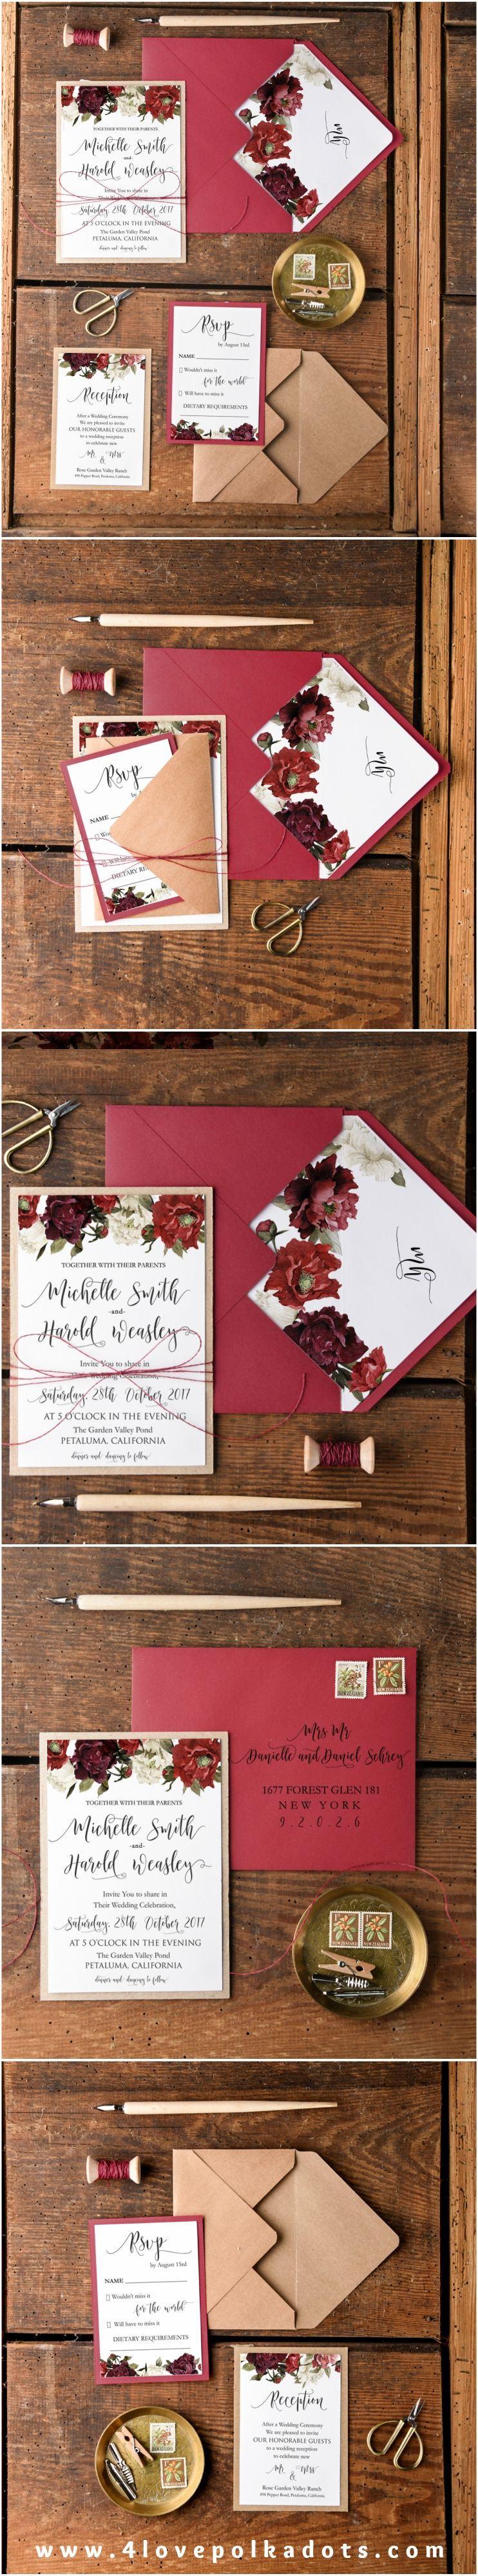 WEDDING INVITATIONS watercolor | Floral wedding, Floral and Weddings